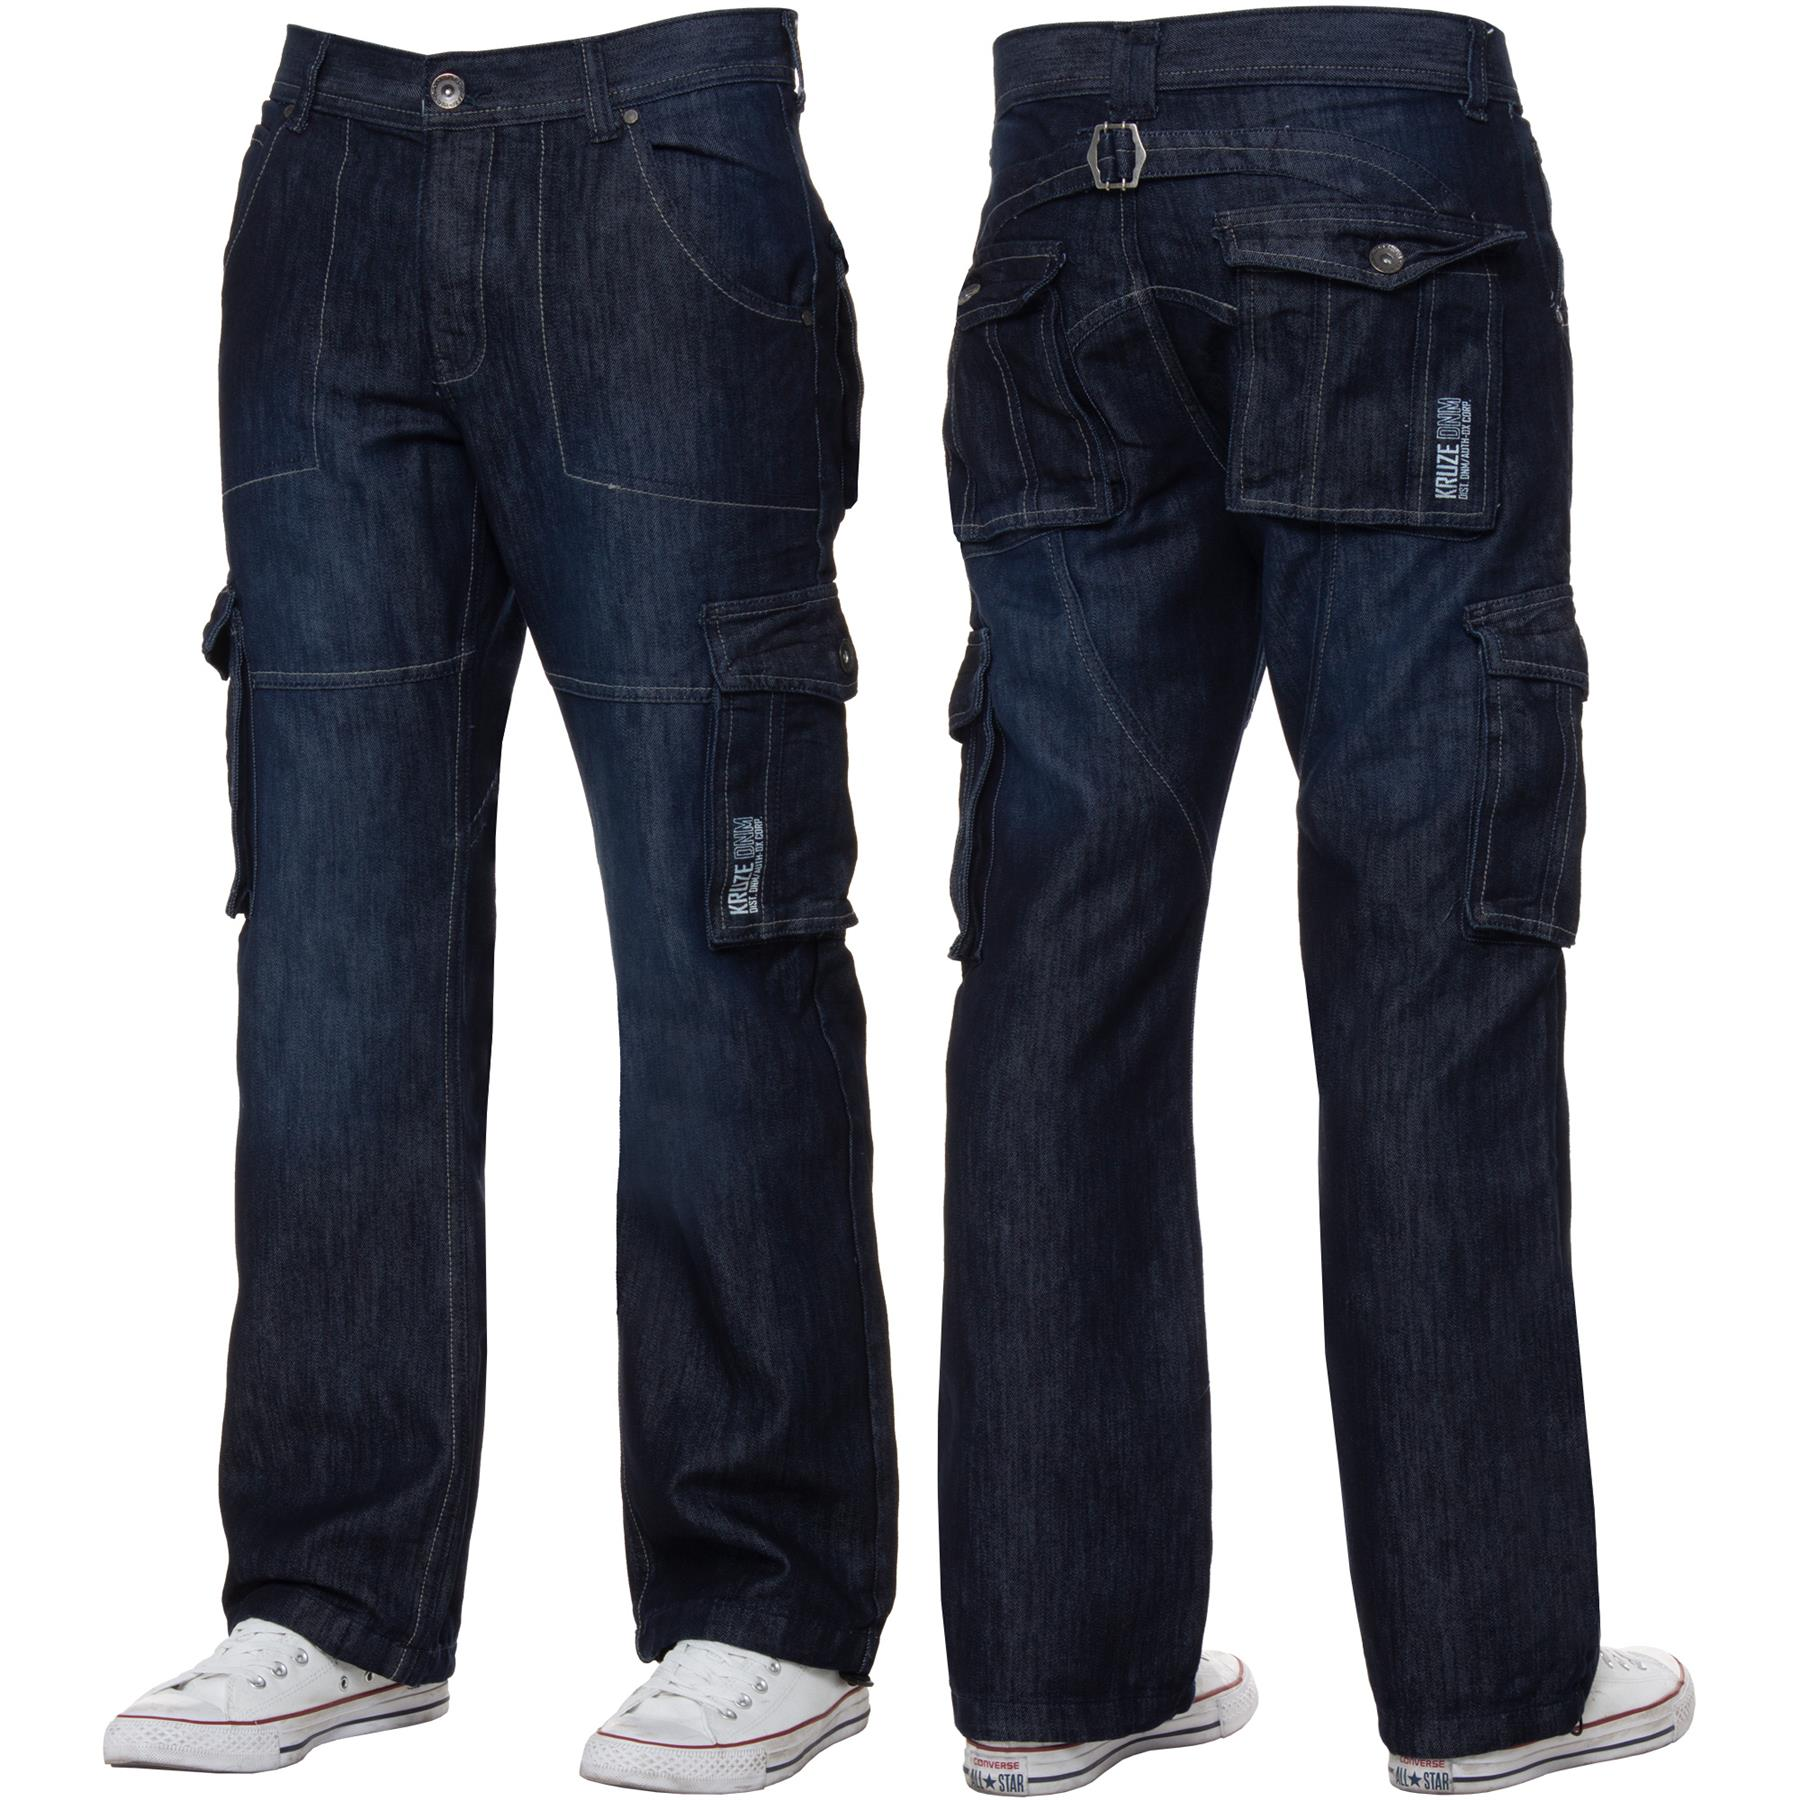 Kruze-Mens-Cargo-Combat-Jeans-Casual-Work-Denim-Pants-Big-Tall-All-Waist-Sizes thumbnail 21